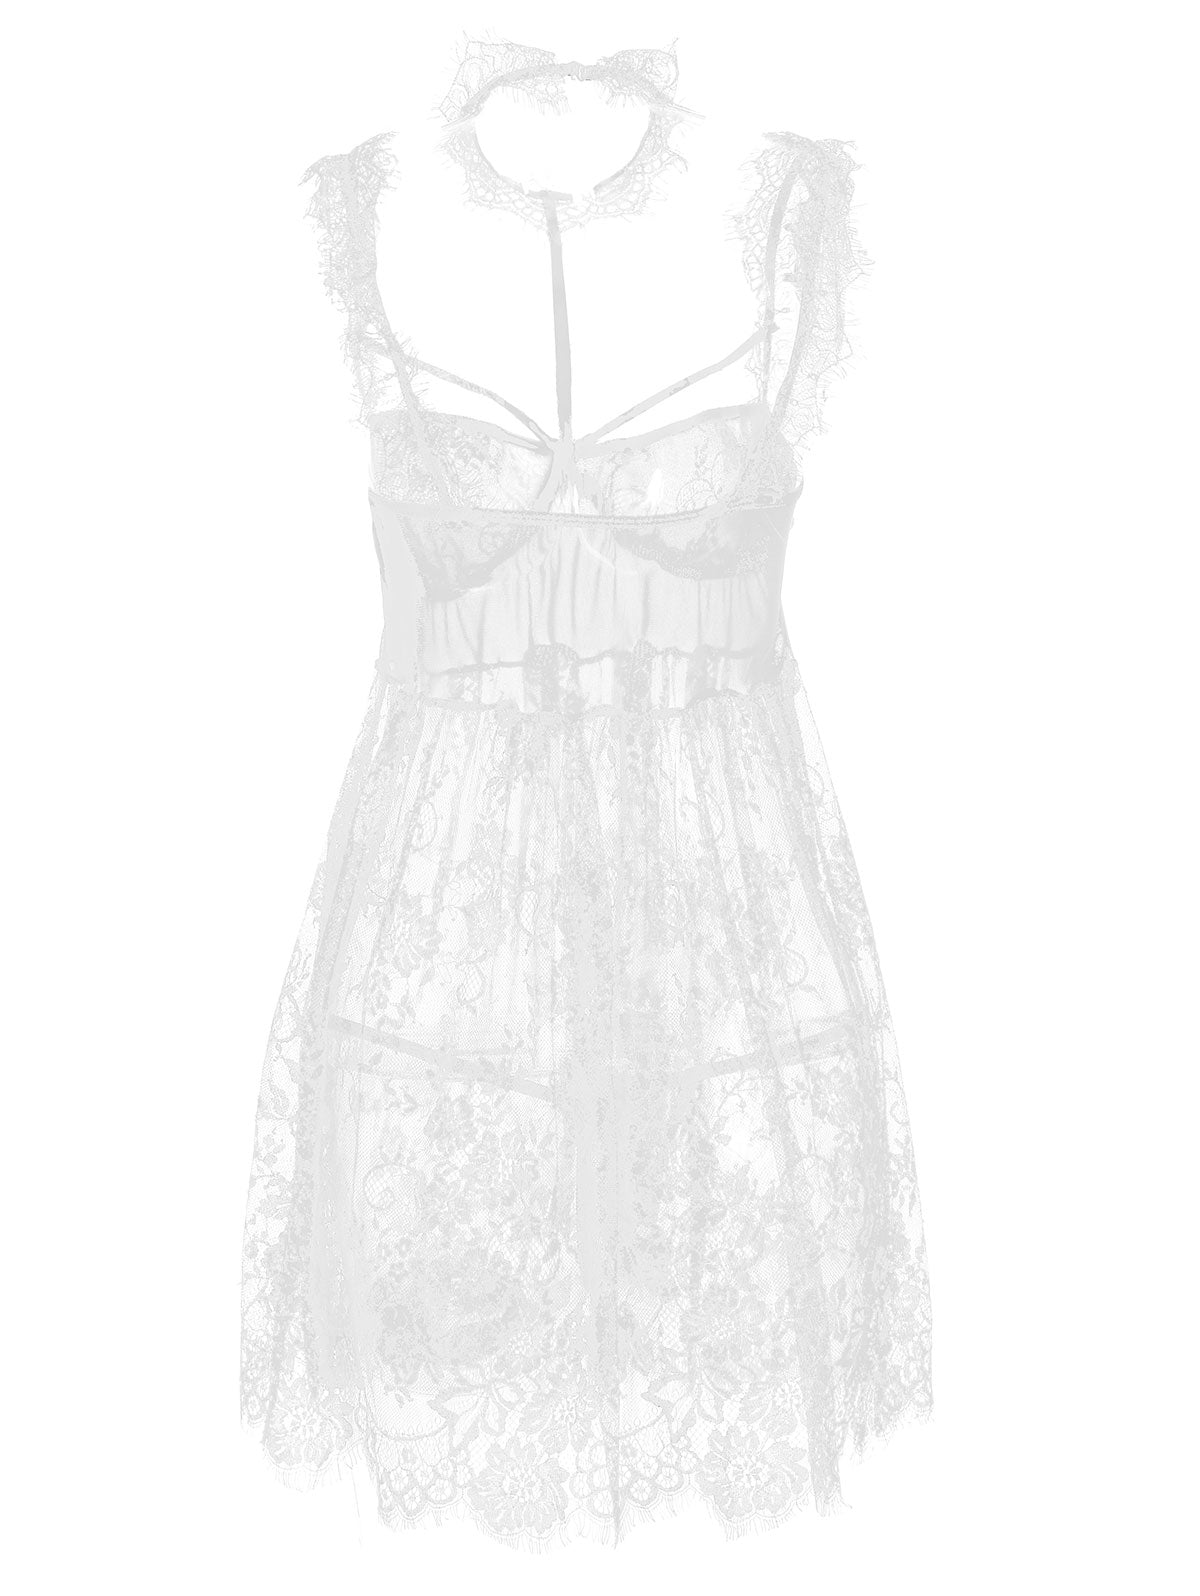 See Thru Lace Choker Lingerie Dress